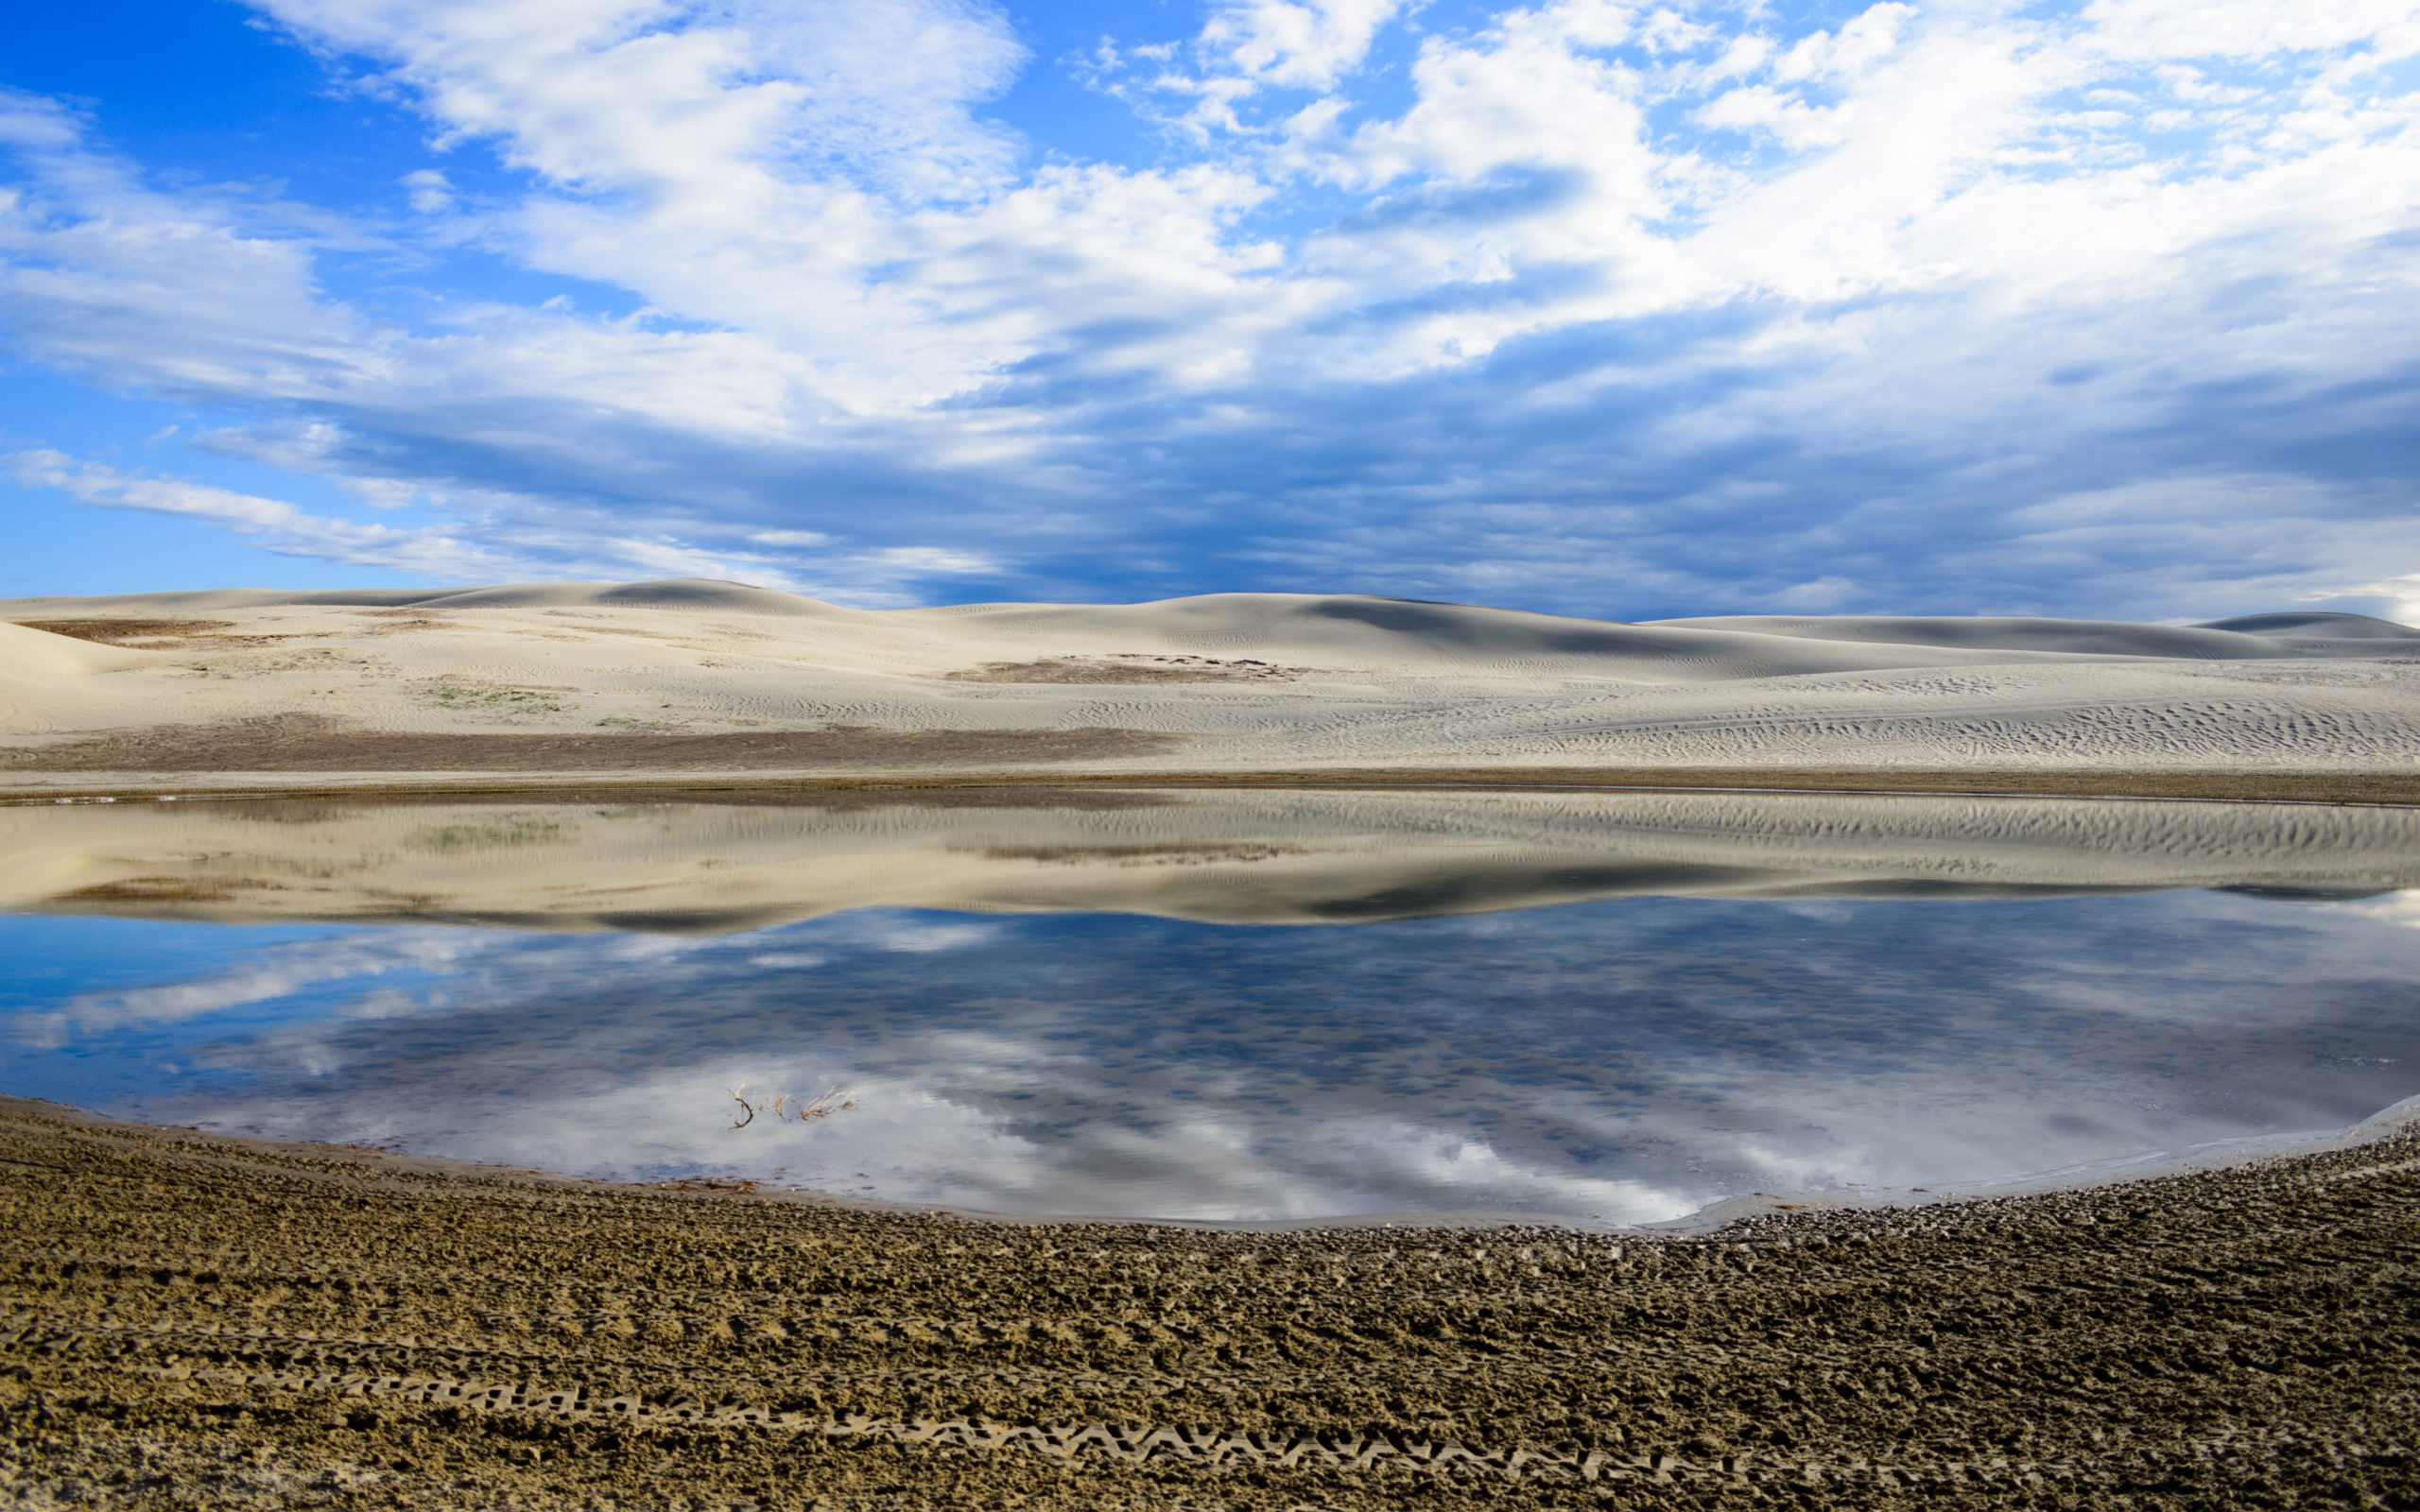 Landscape of sand dunes reflected in a pond.